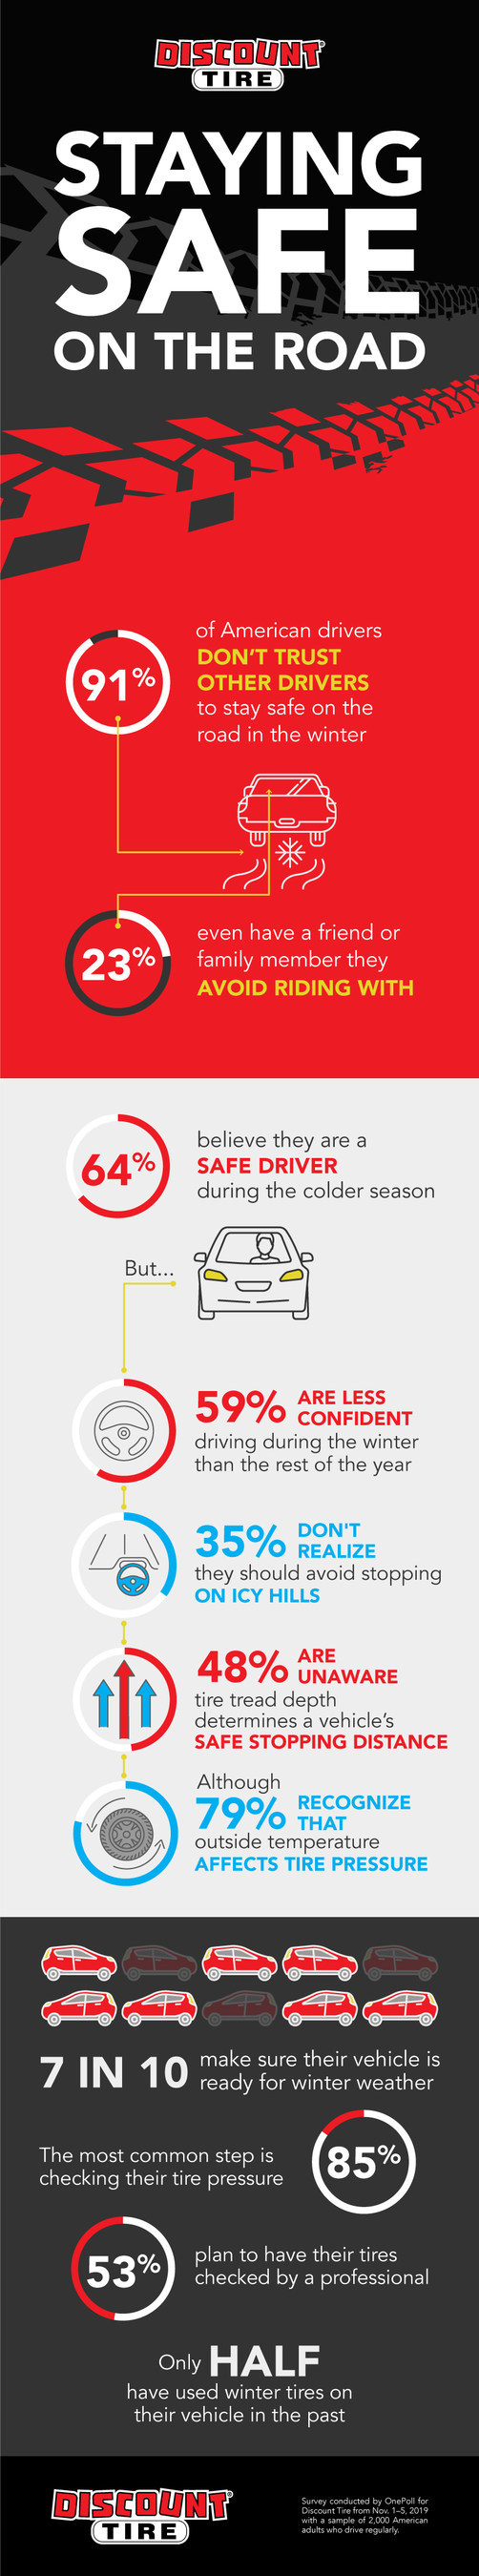 Discount Tire identifies concerns and habits that impact drivers' safety on the roads in new poll.